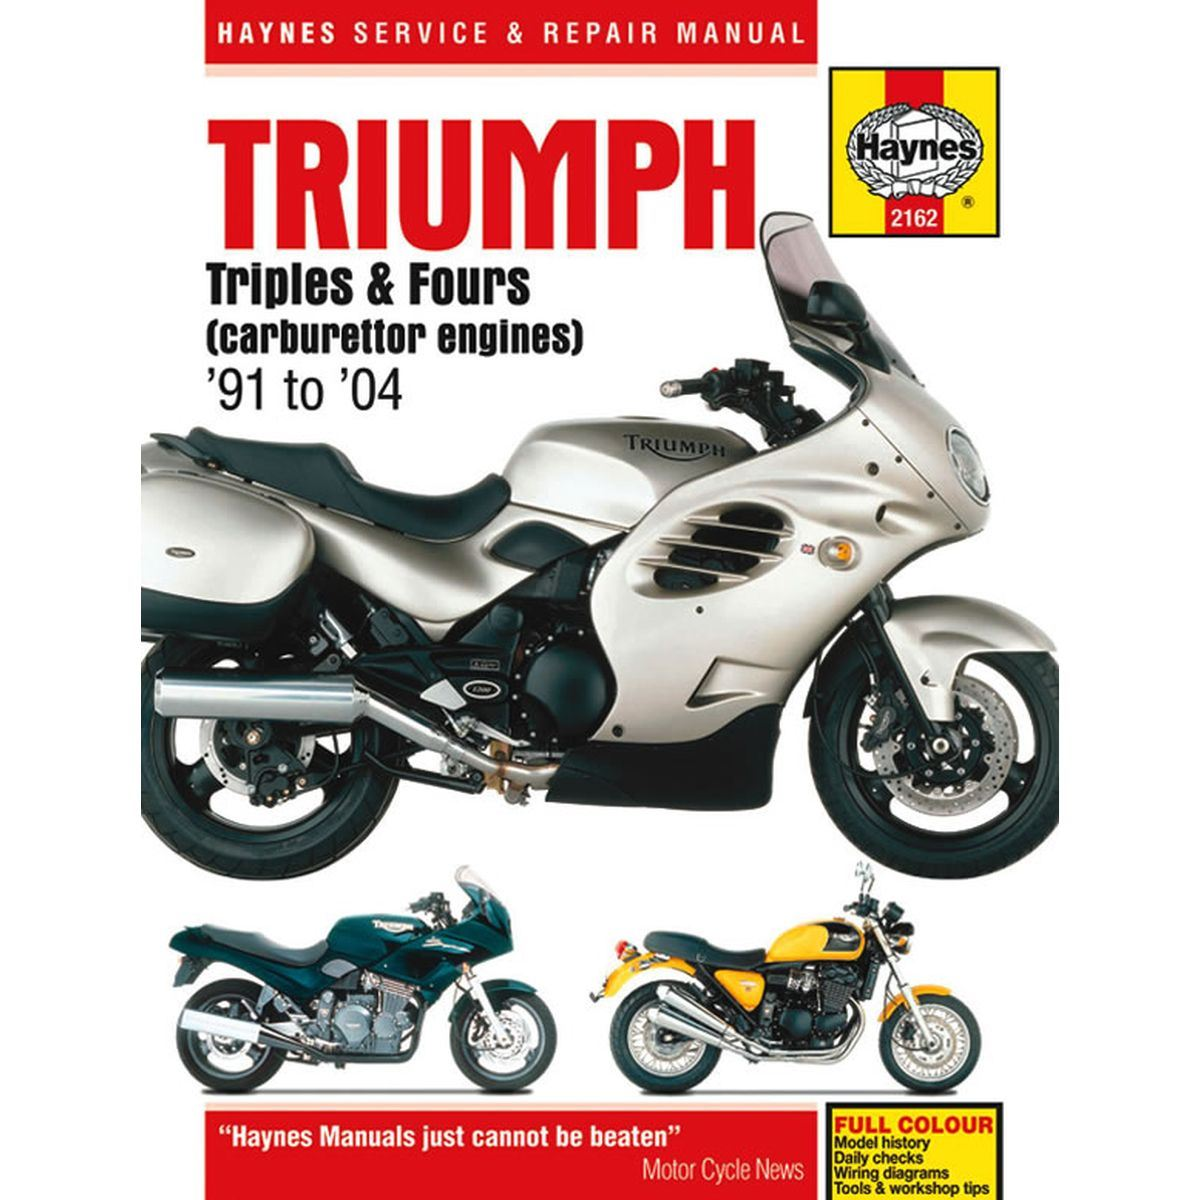 Image is loading Manual-Haynes-for-2001-Triumph-Thunderbird-Sport-900-